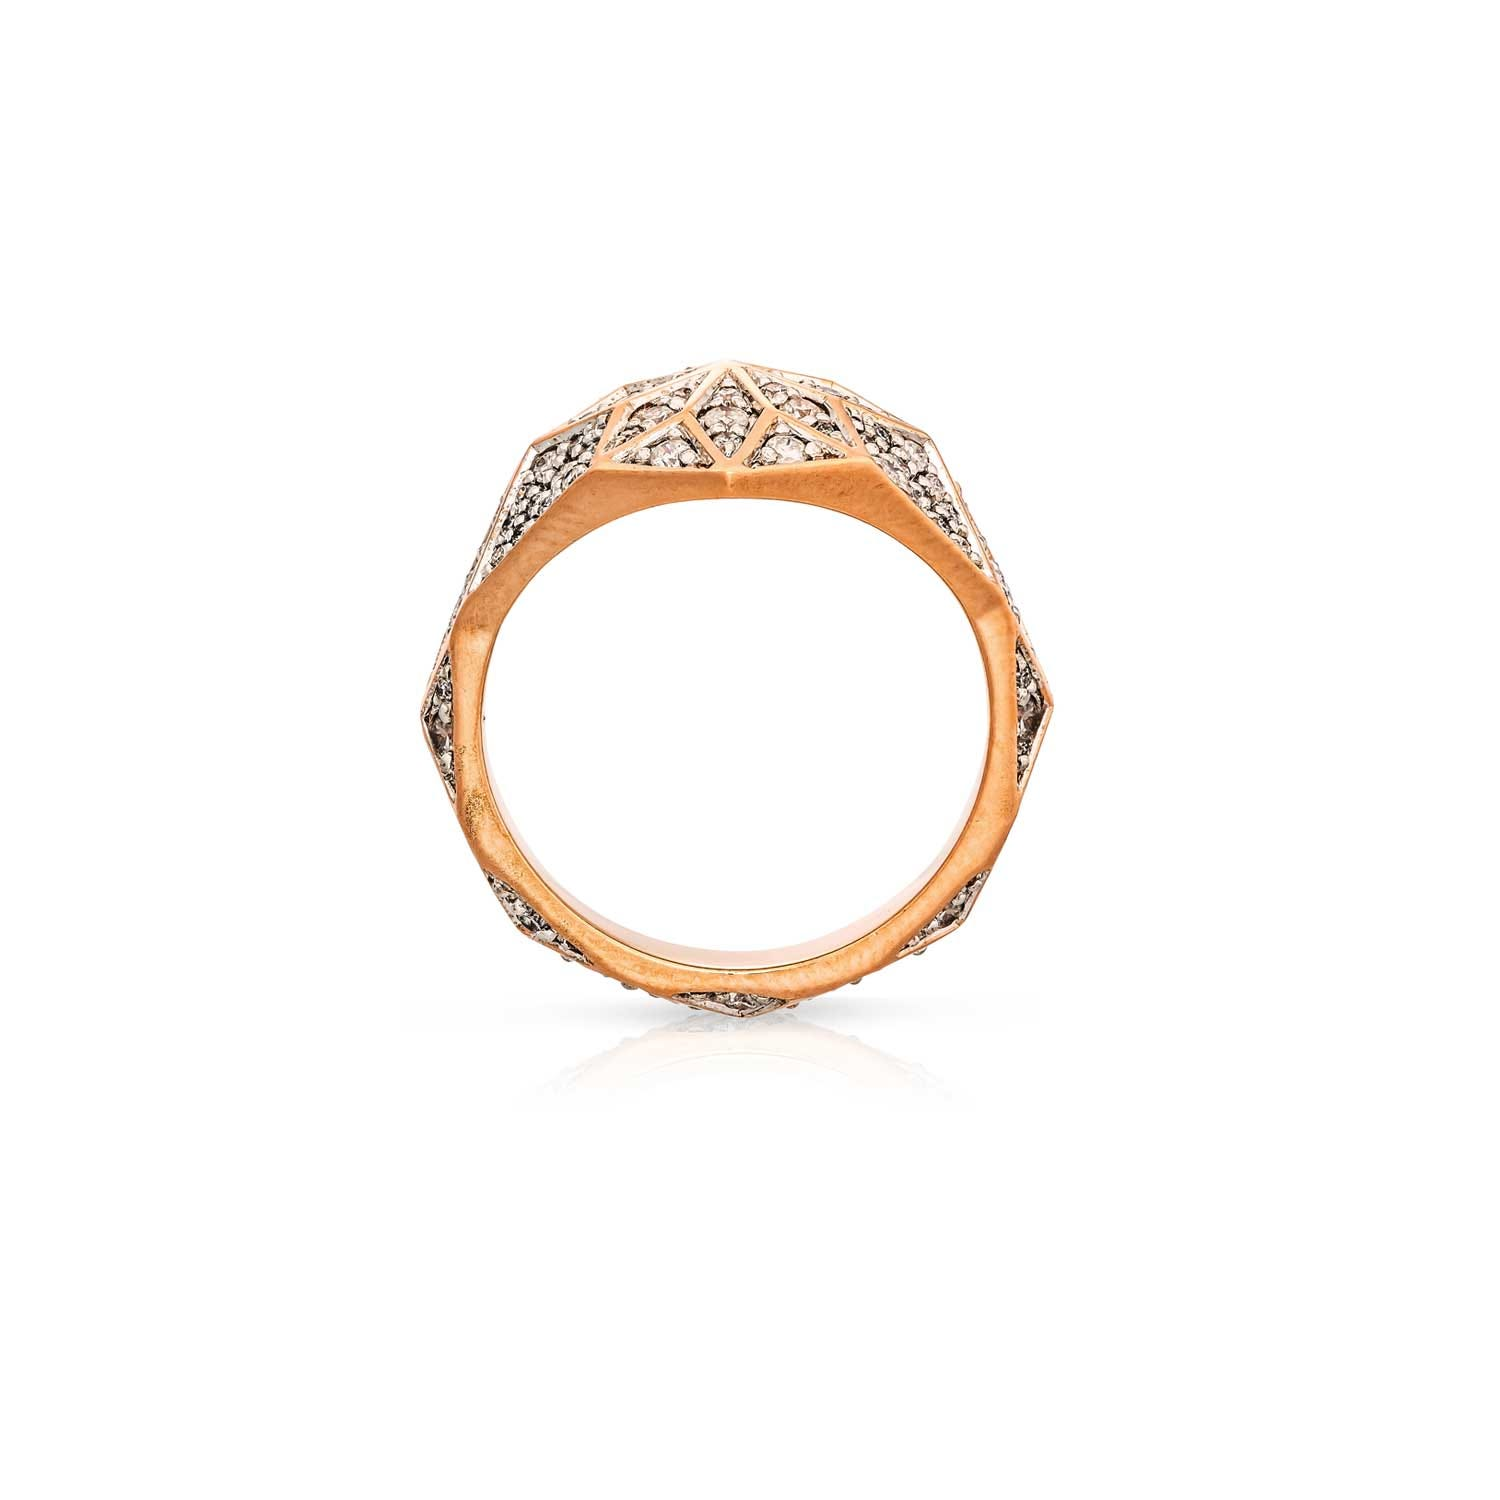 Venus Star Ring. 9k Rose Gold / Diamond  - Image